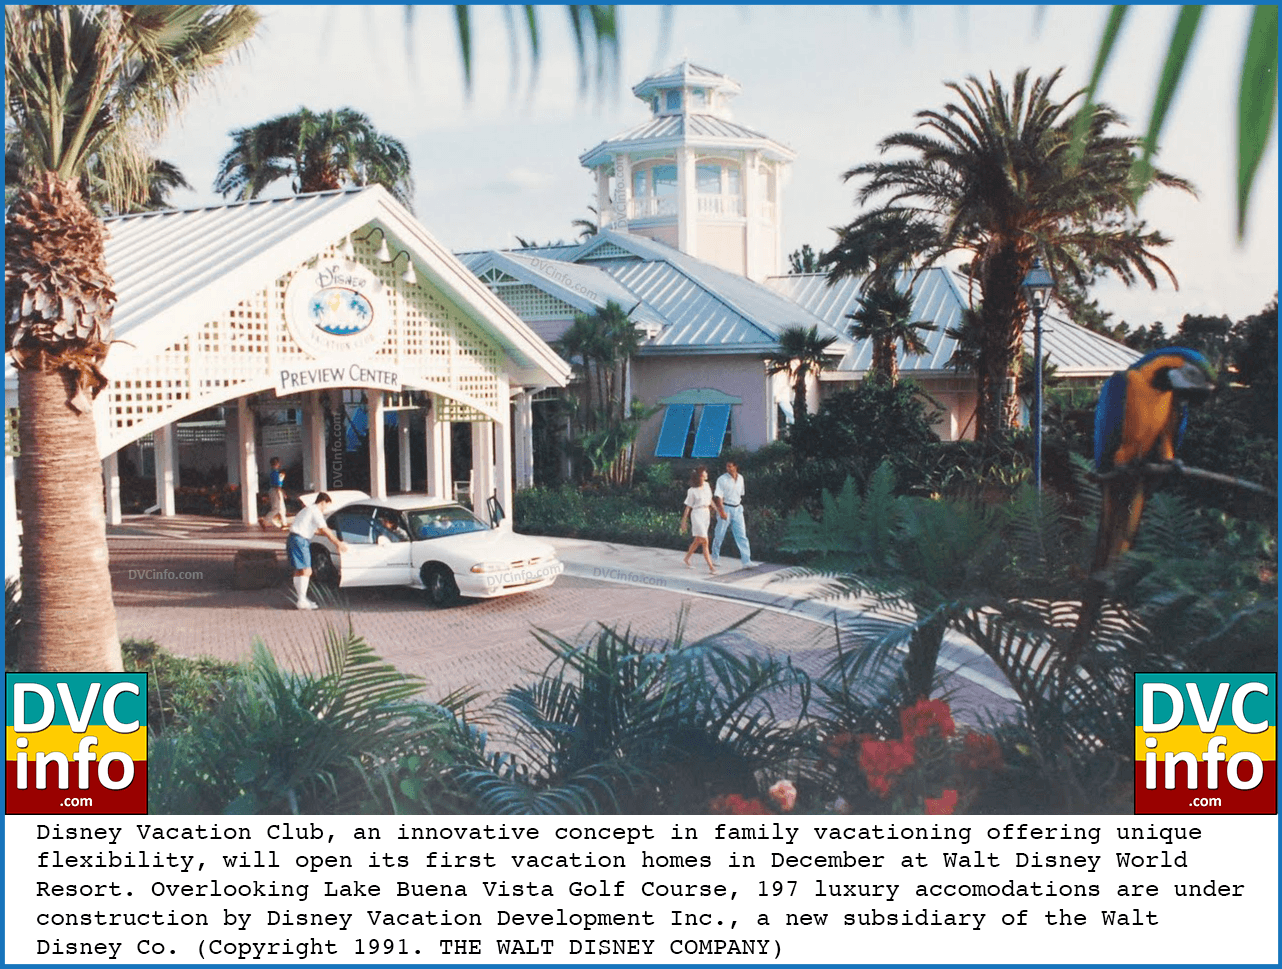 094db28ef 1991 Press Release announcing the upcoming opening of the Disney Vacation  Club resort (click for larger image)